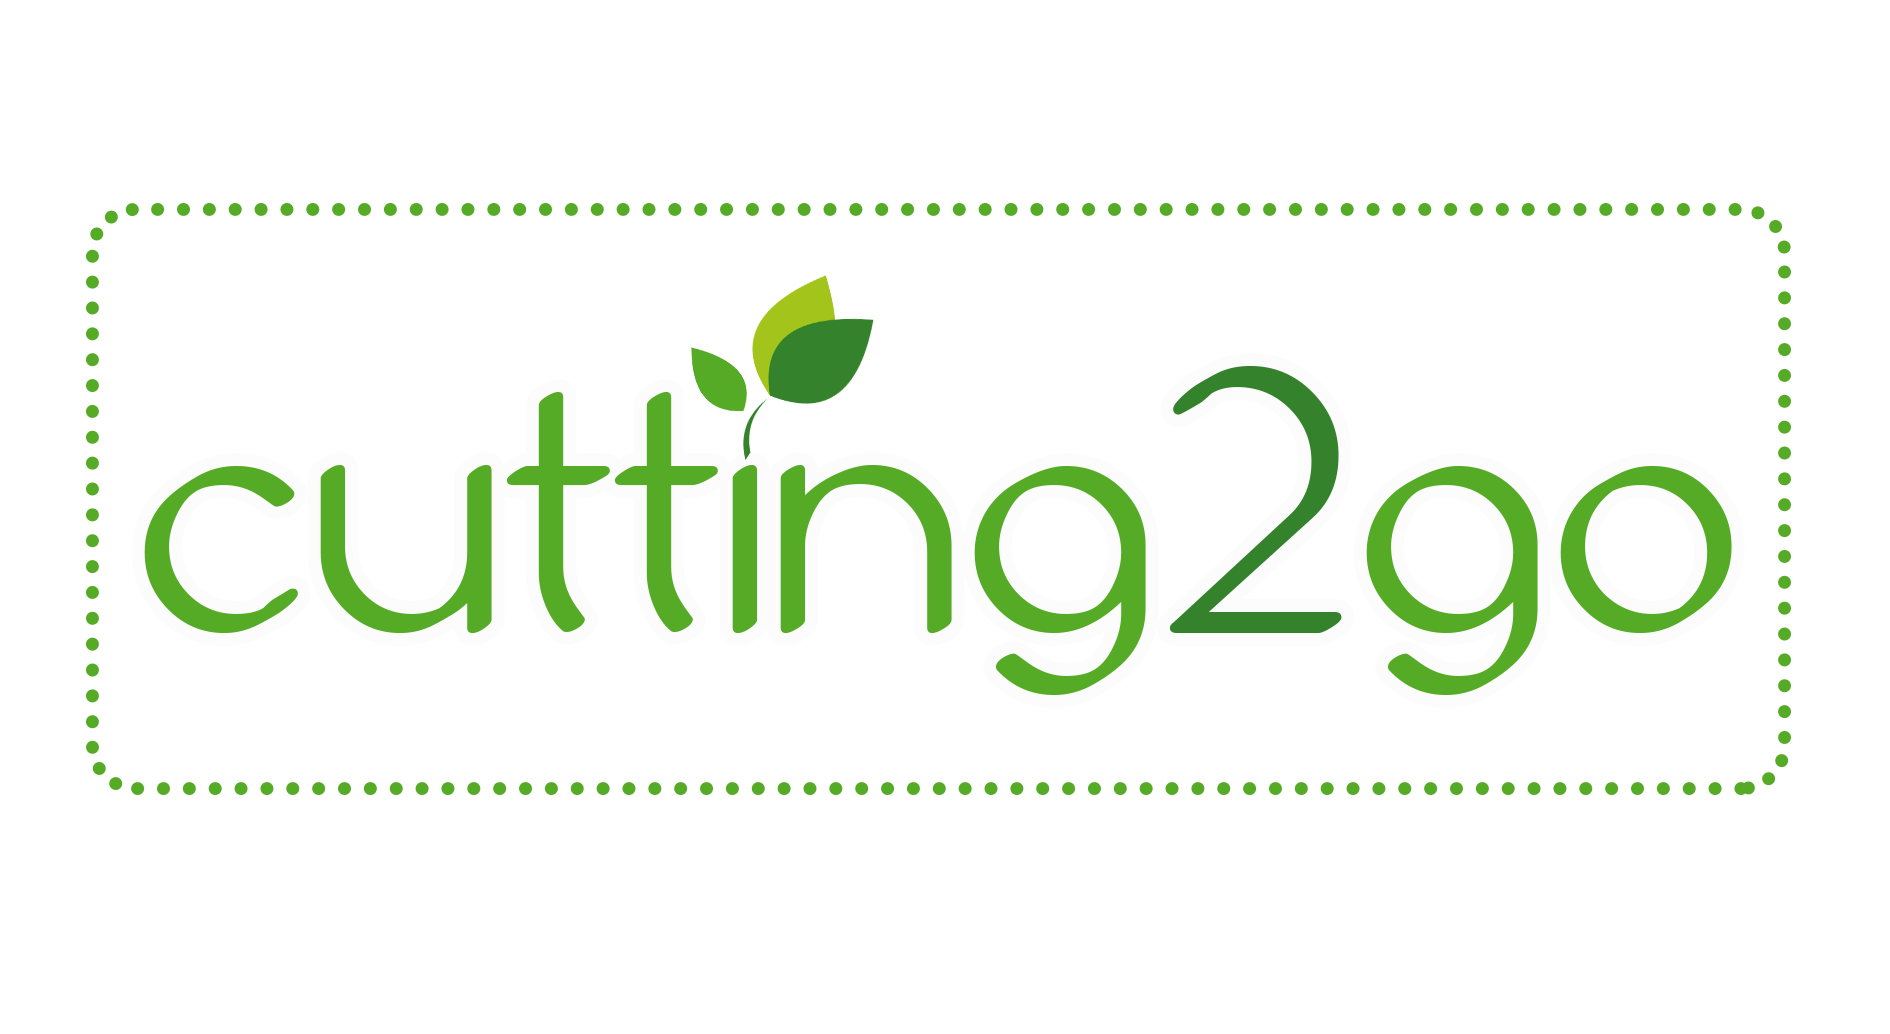 Cutting2go